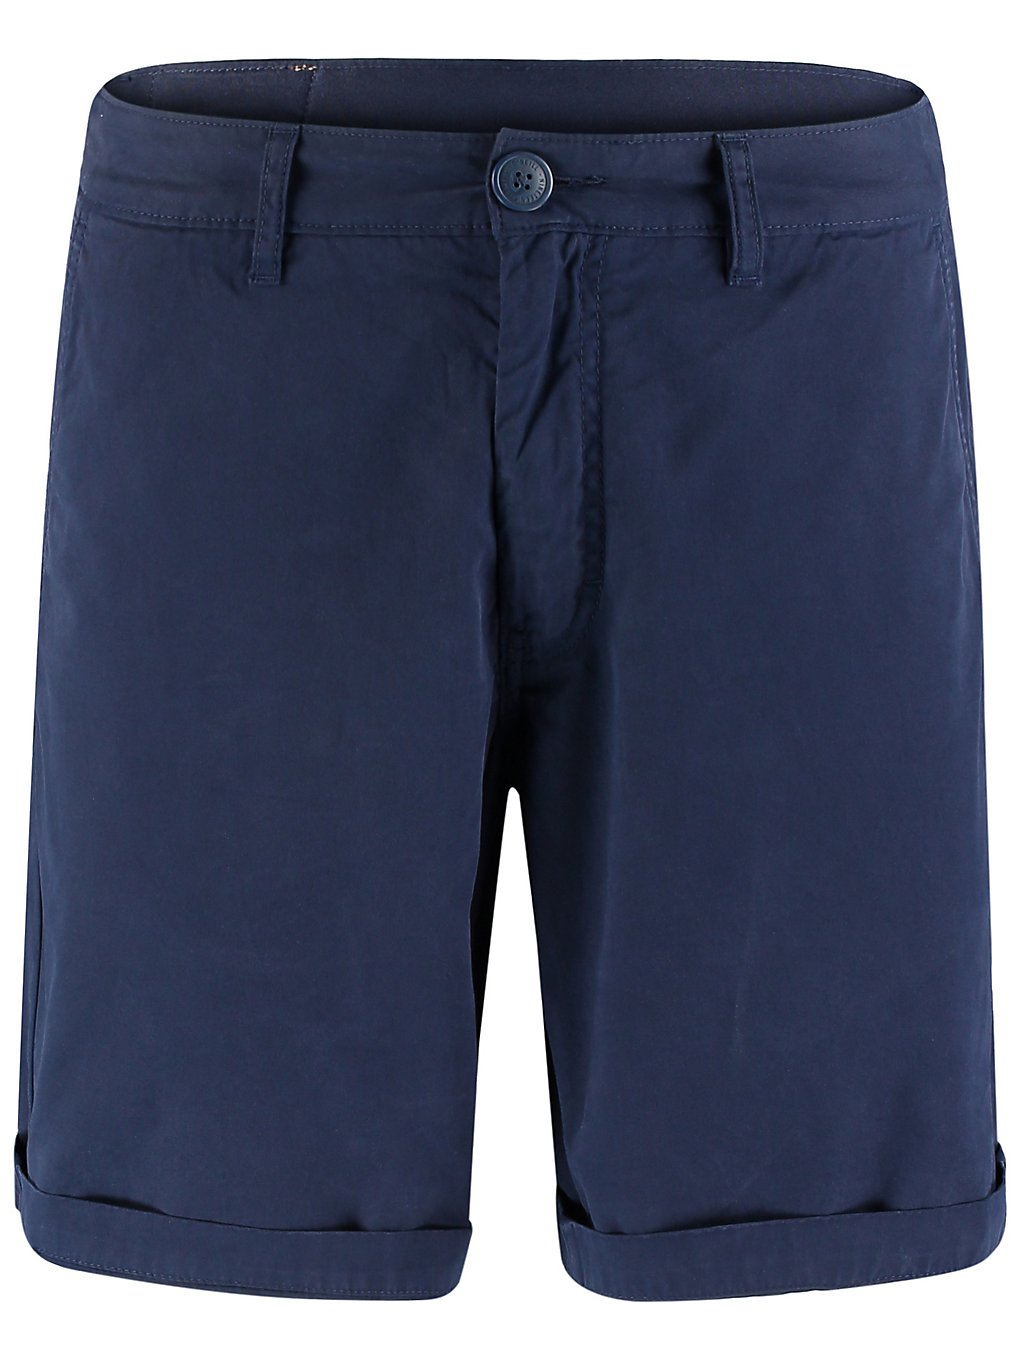 O'Neill Friday Night Chino Shorts scale